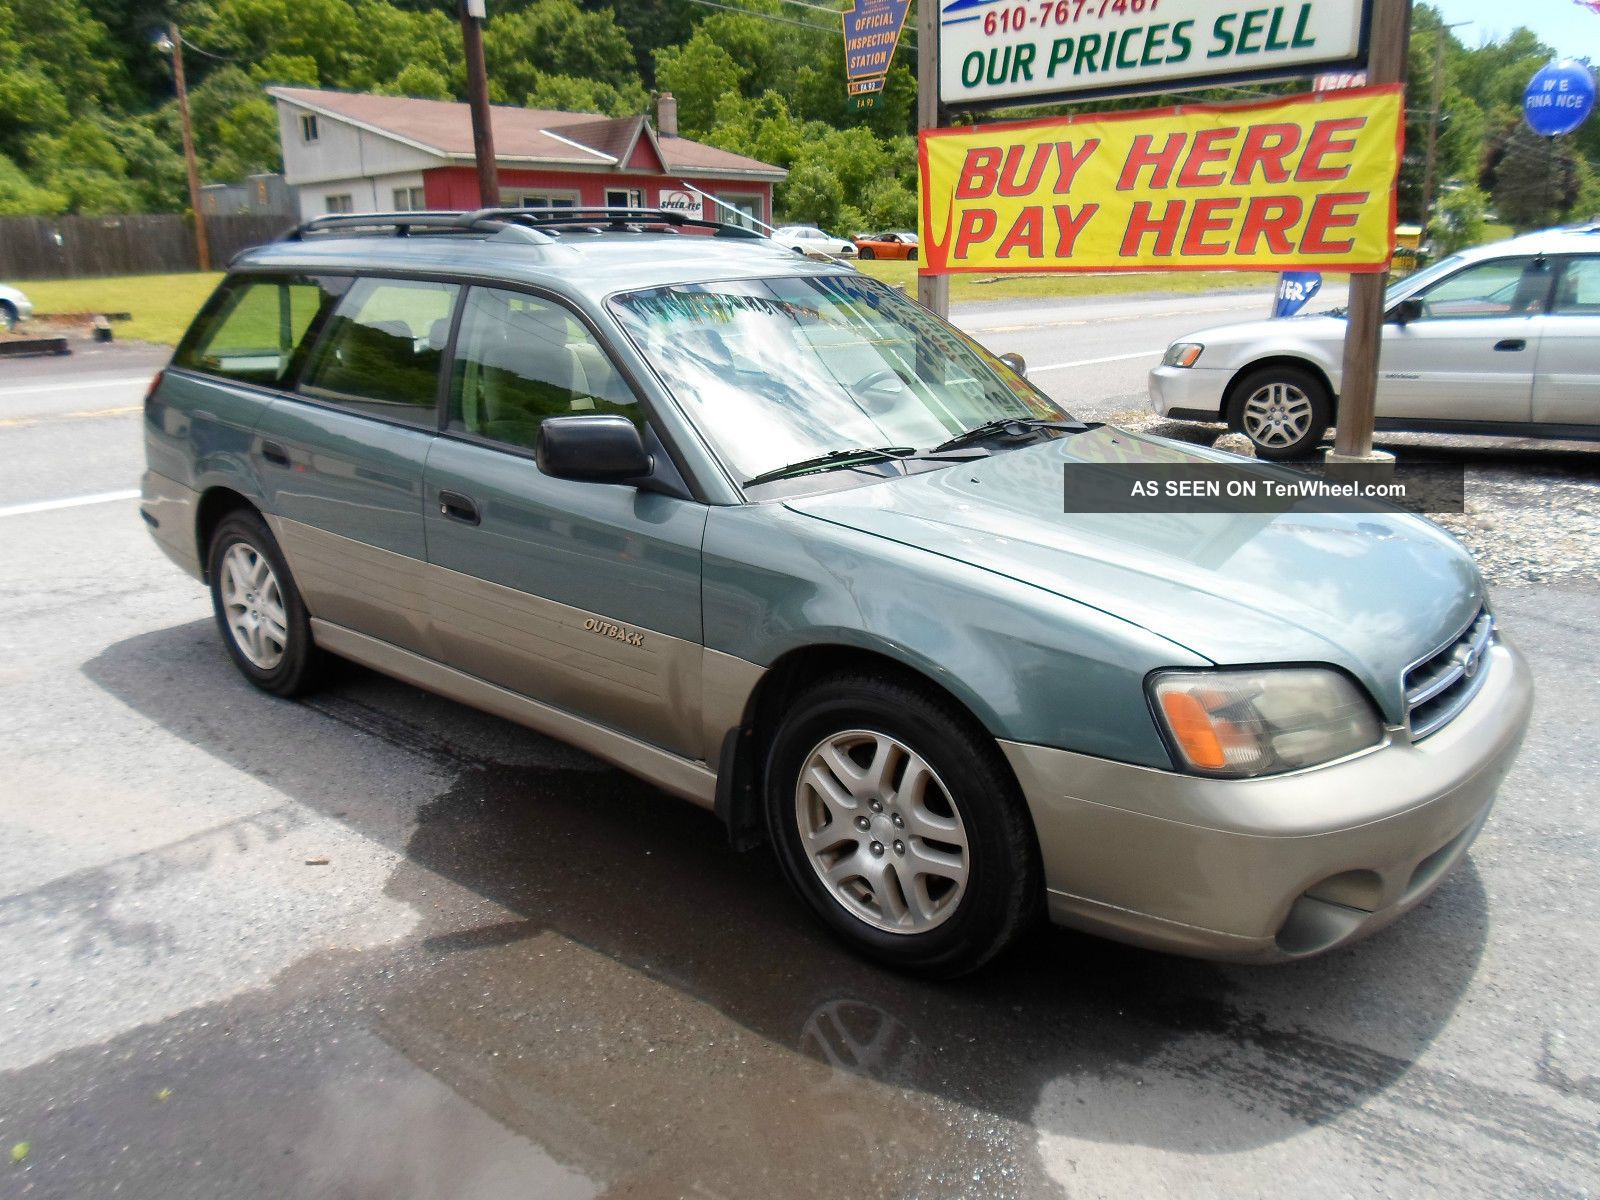 2001 Subaru Legacy Outback Outback photo